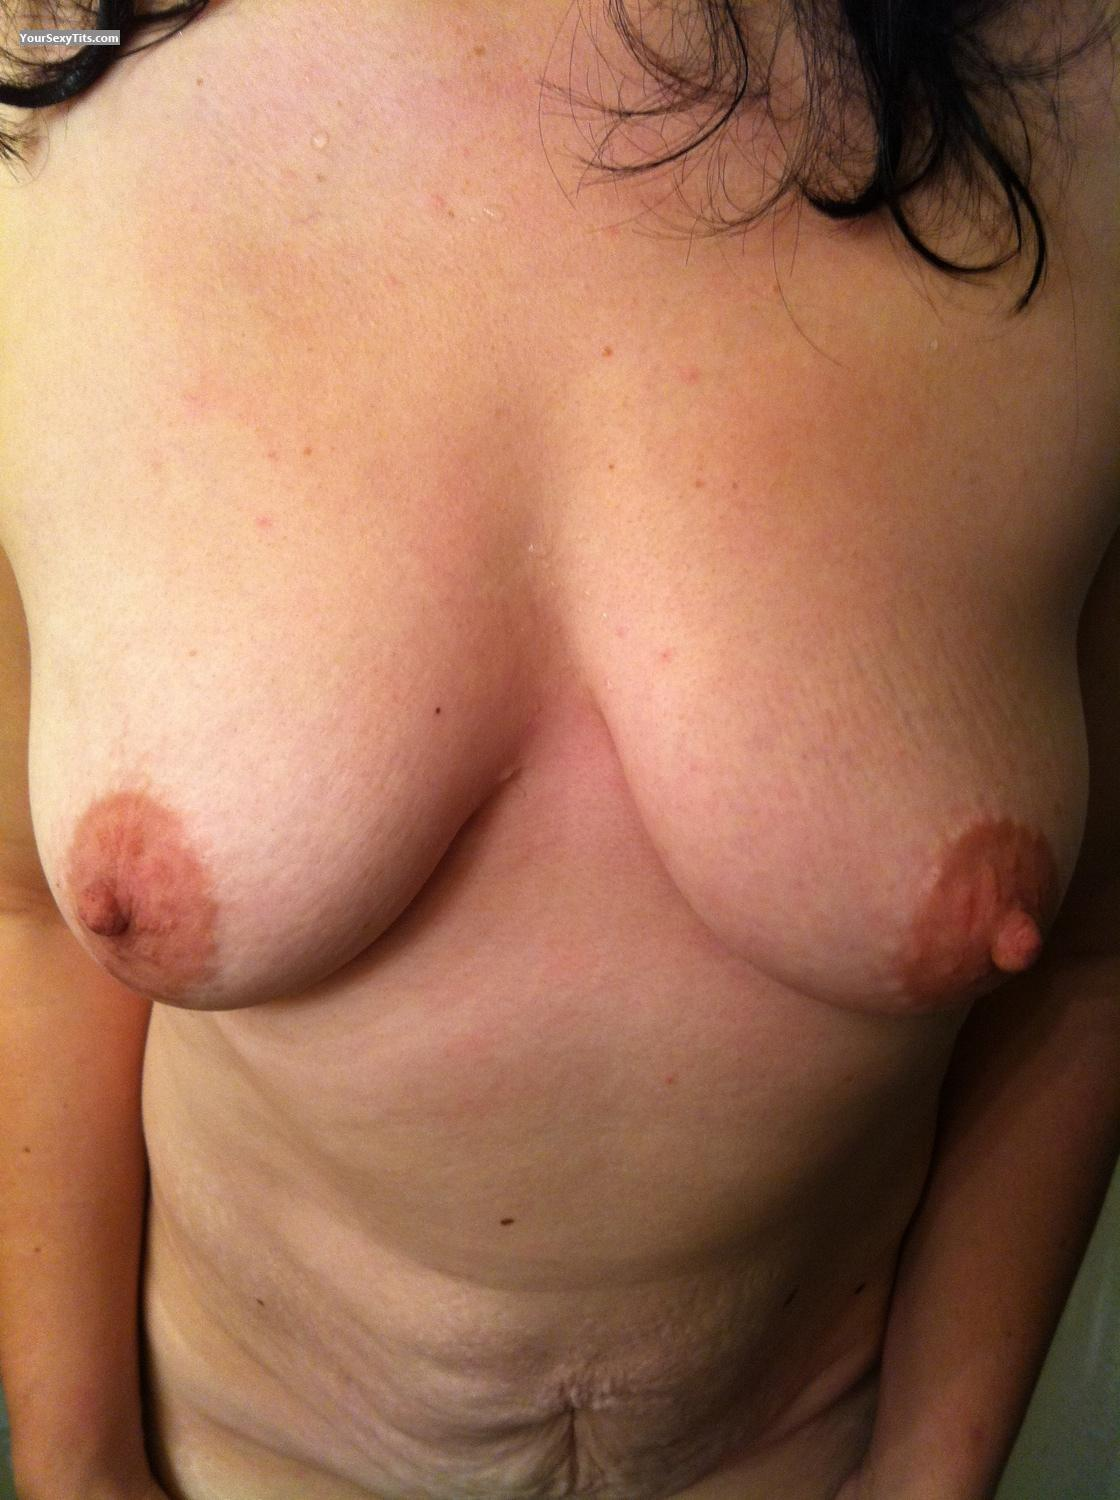 Tit Flash: Medium Tits By IPhone - Gtid5 from United States